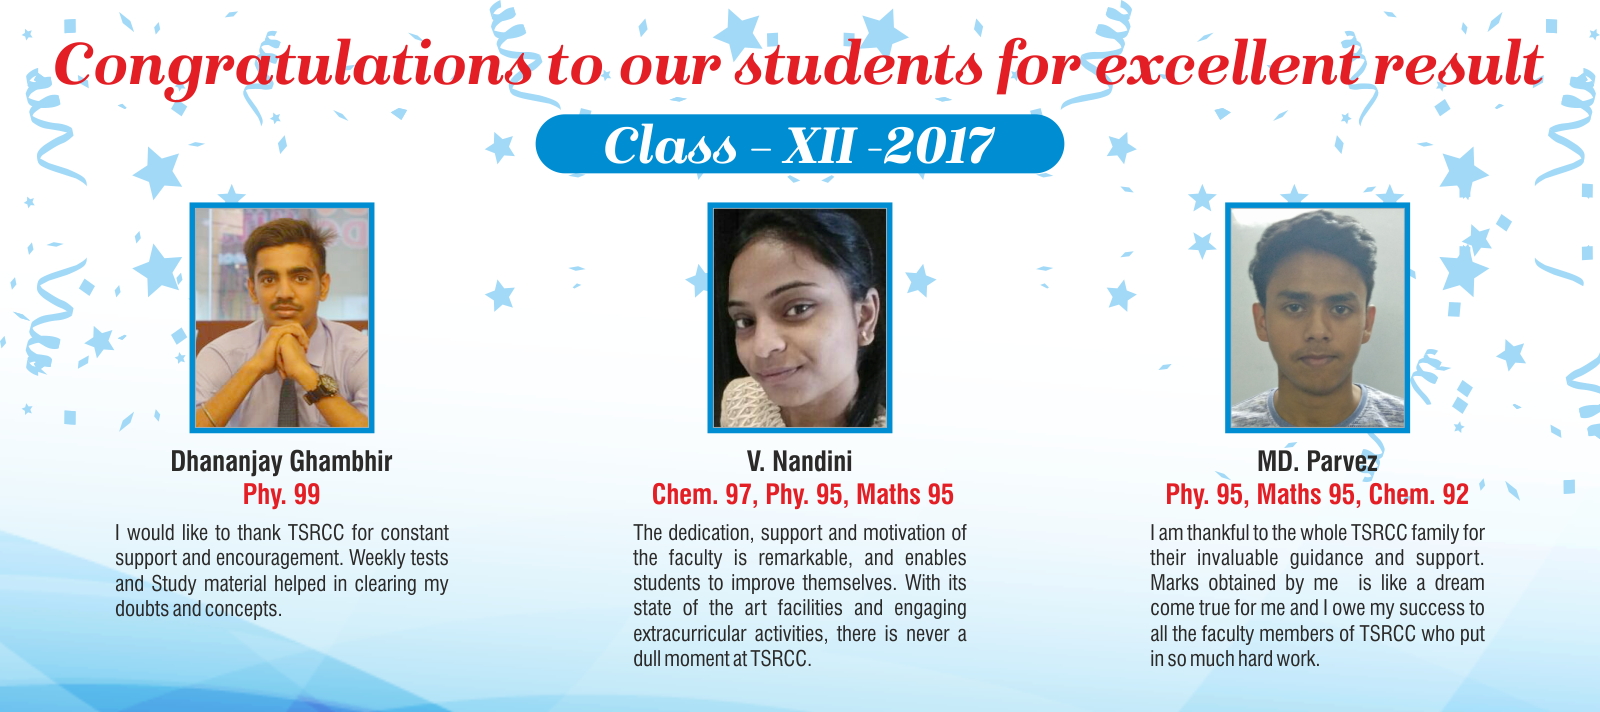 Result Class XII -2017